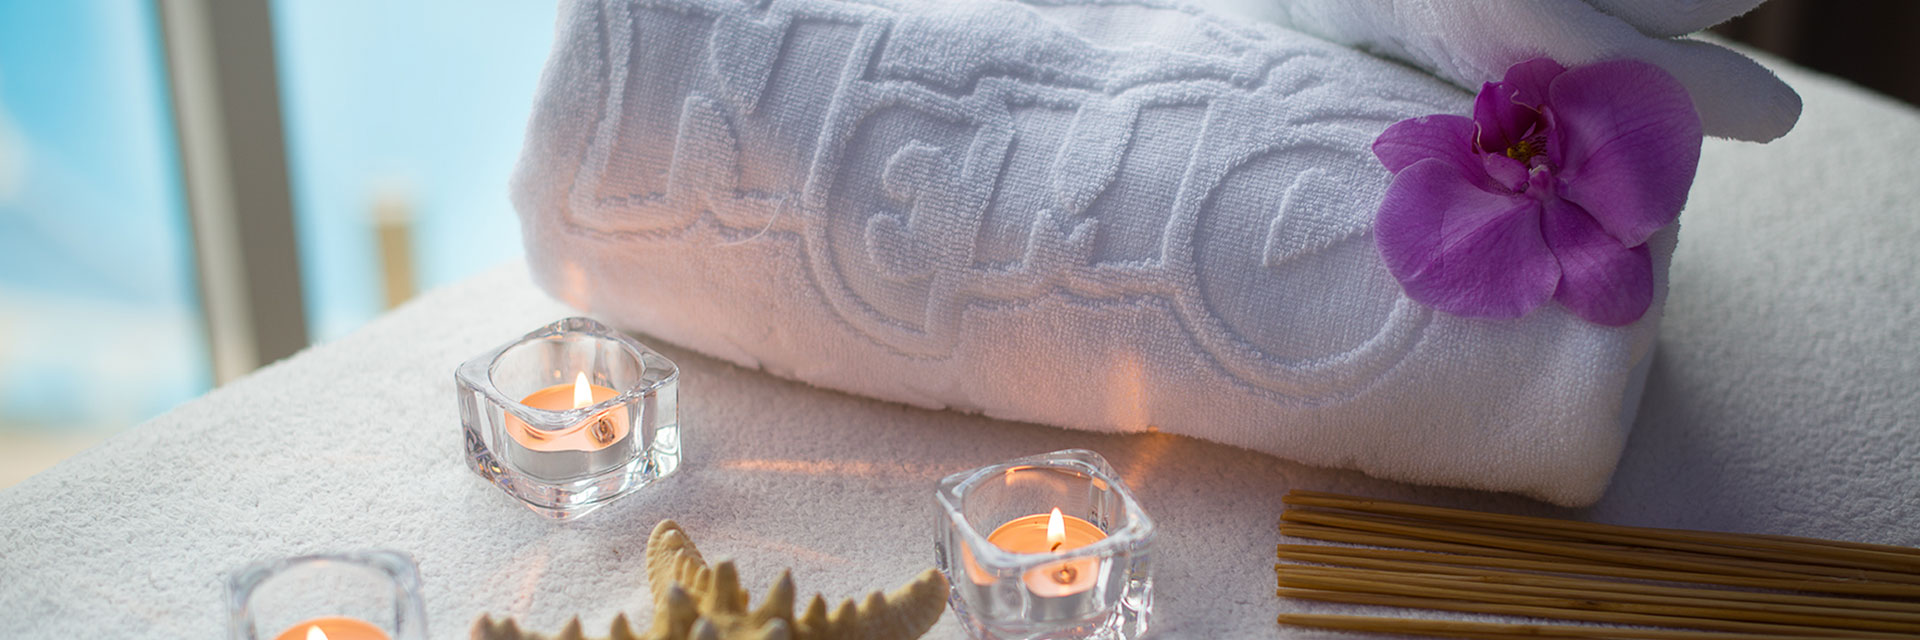 Moroccan body care in Hammam in RESORT & SPA HOTEL NEMO, photo № 1